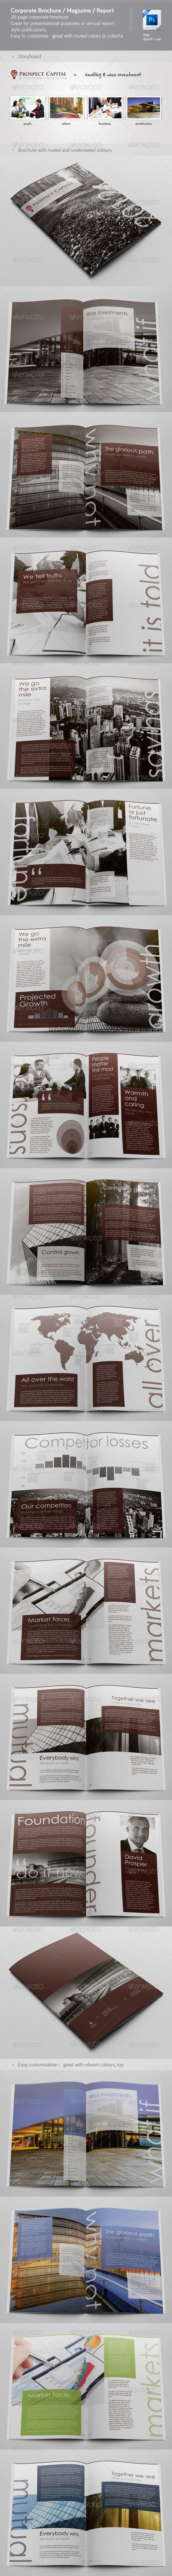 Corporate Brochure / Magazine / Annual Report - Corporate Brochures